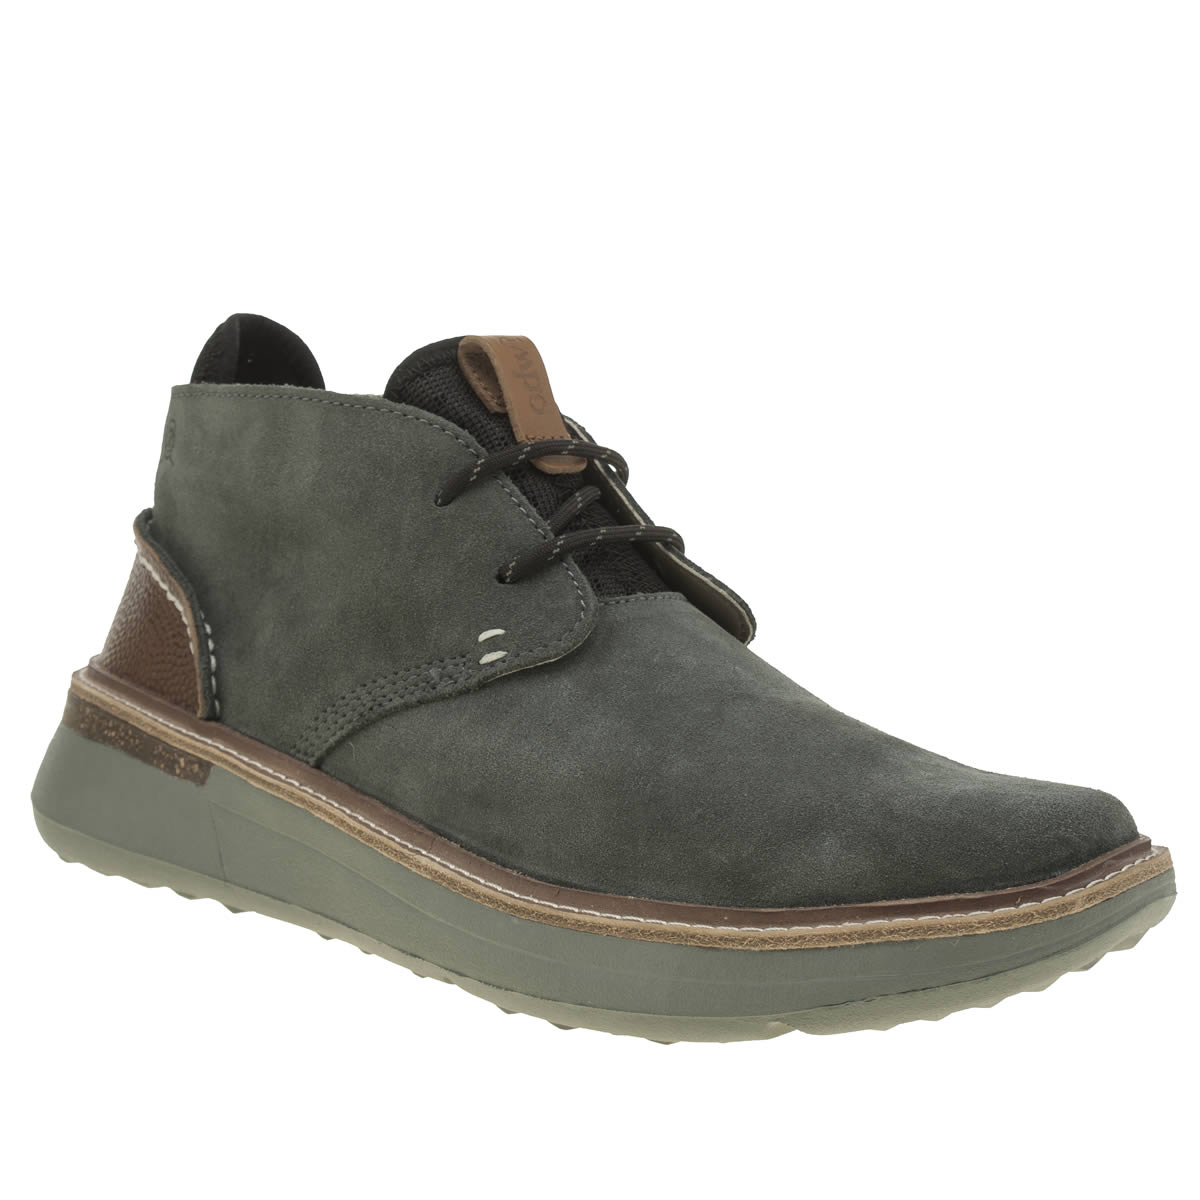 ohw? Ohw? Grey Grindal Boots